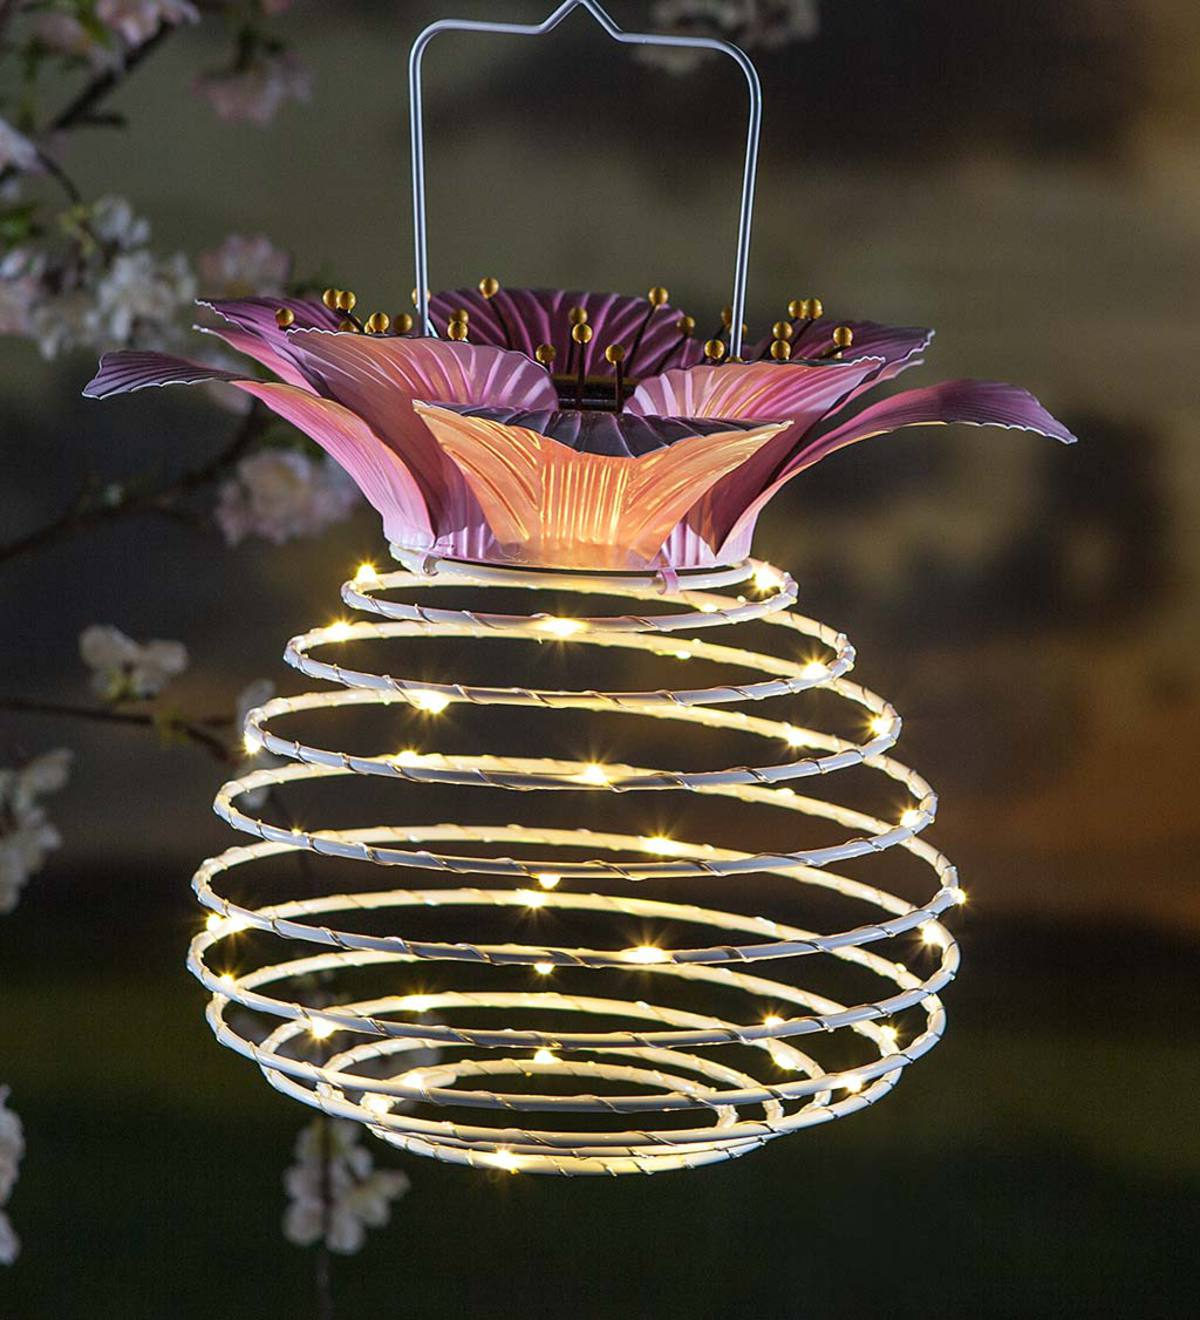 Hanging Spring-Coil Solar Lantern with Flower Top